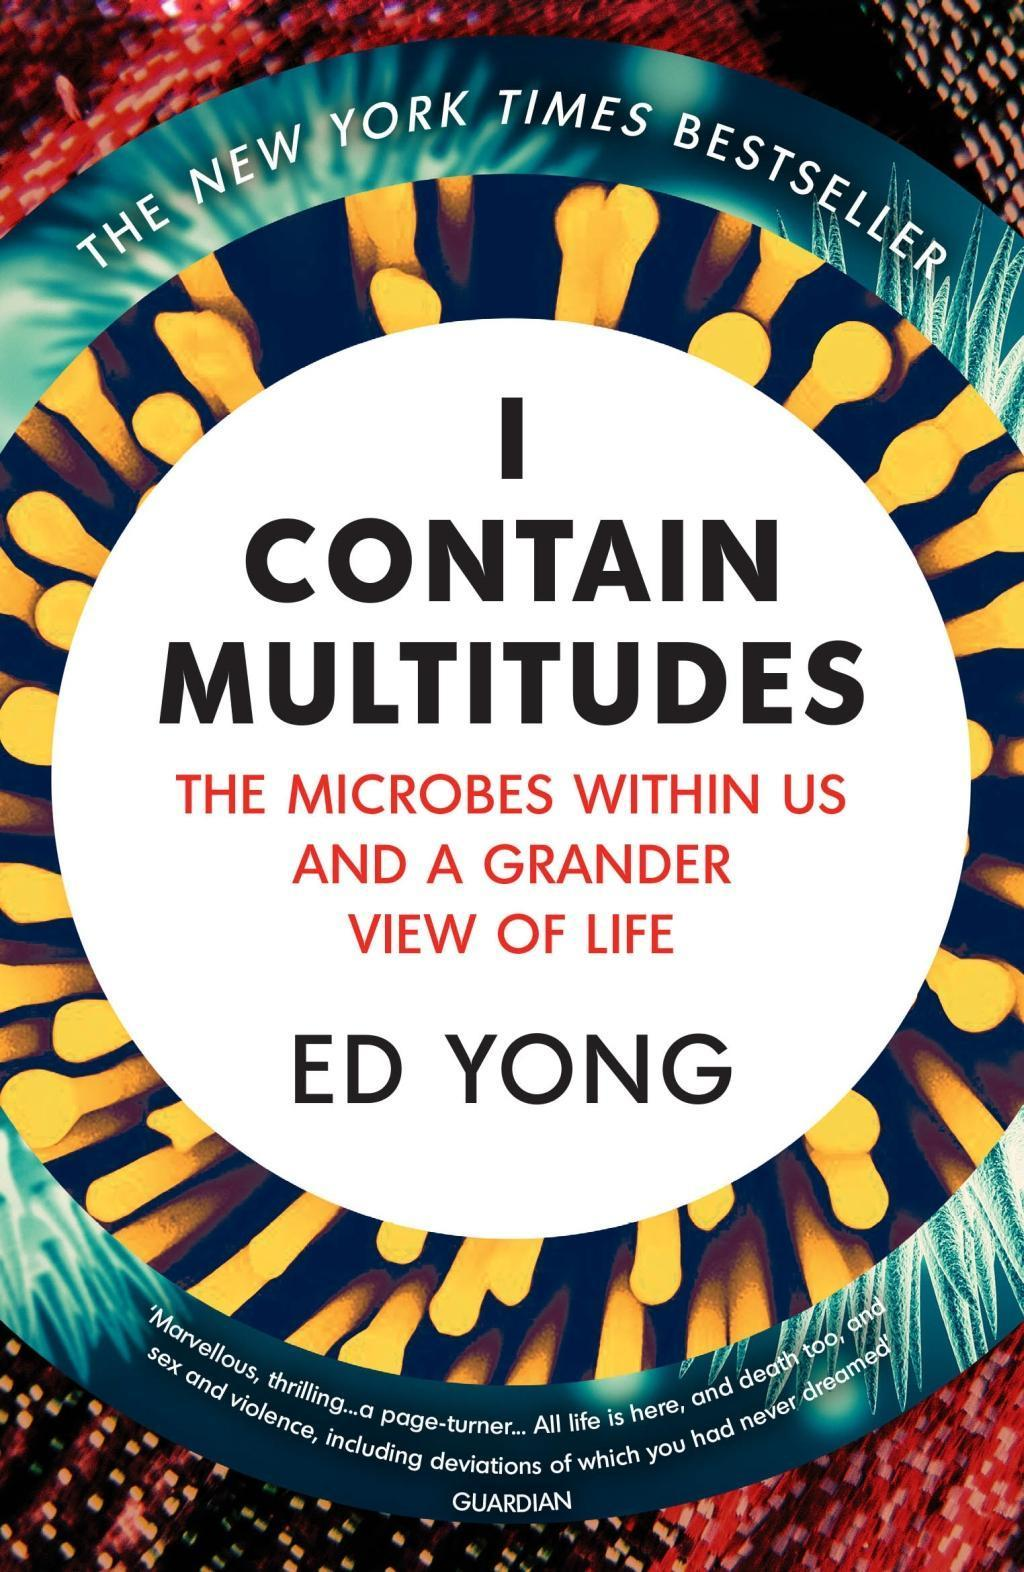 I Contain Multitudes Ed Yong